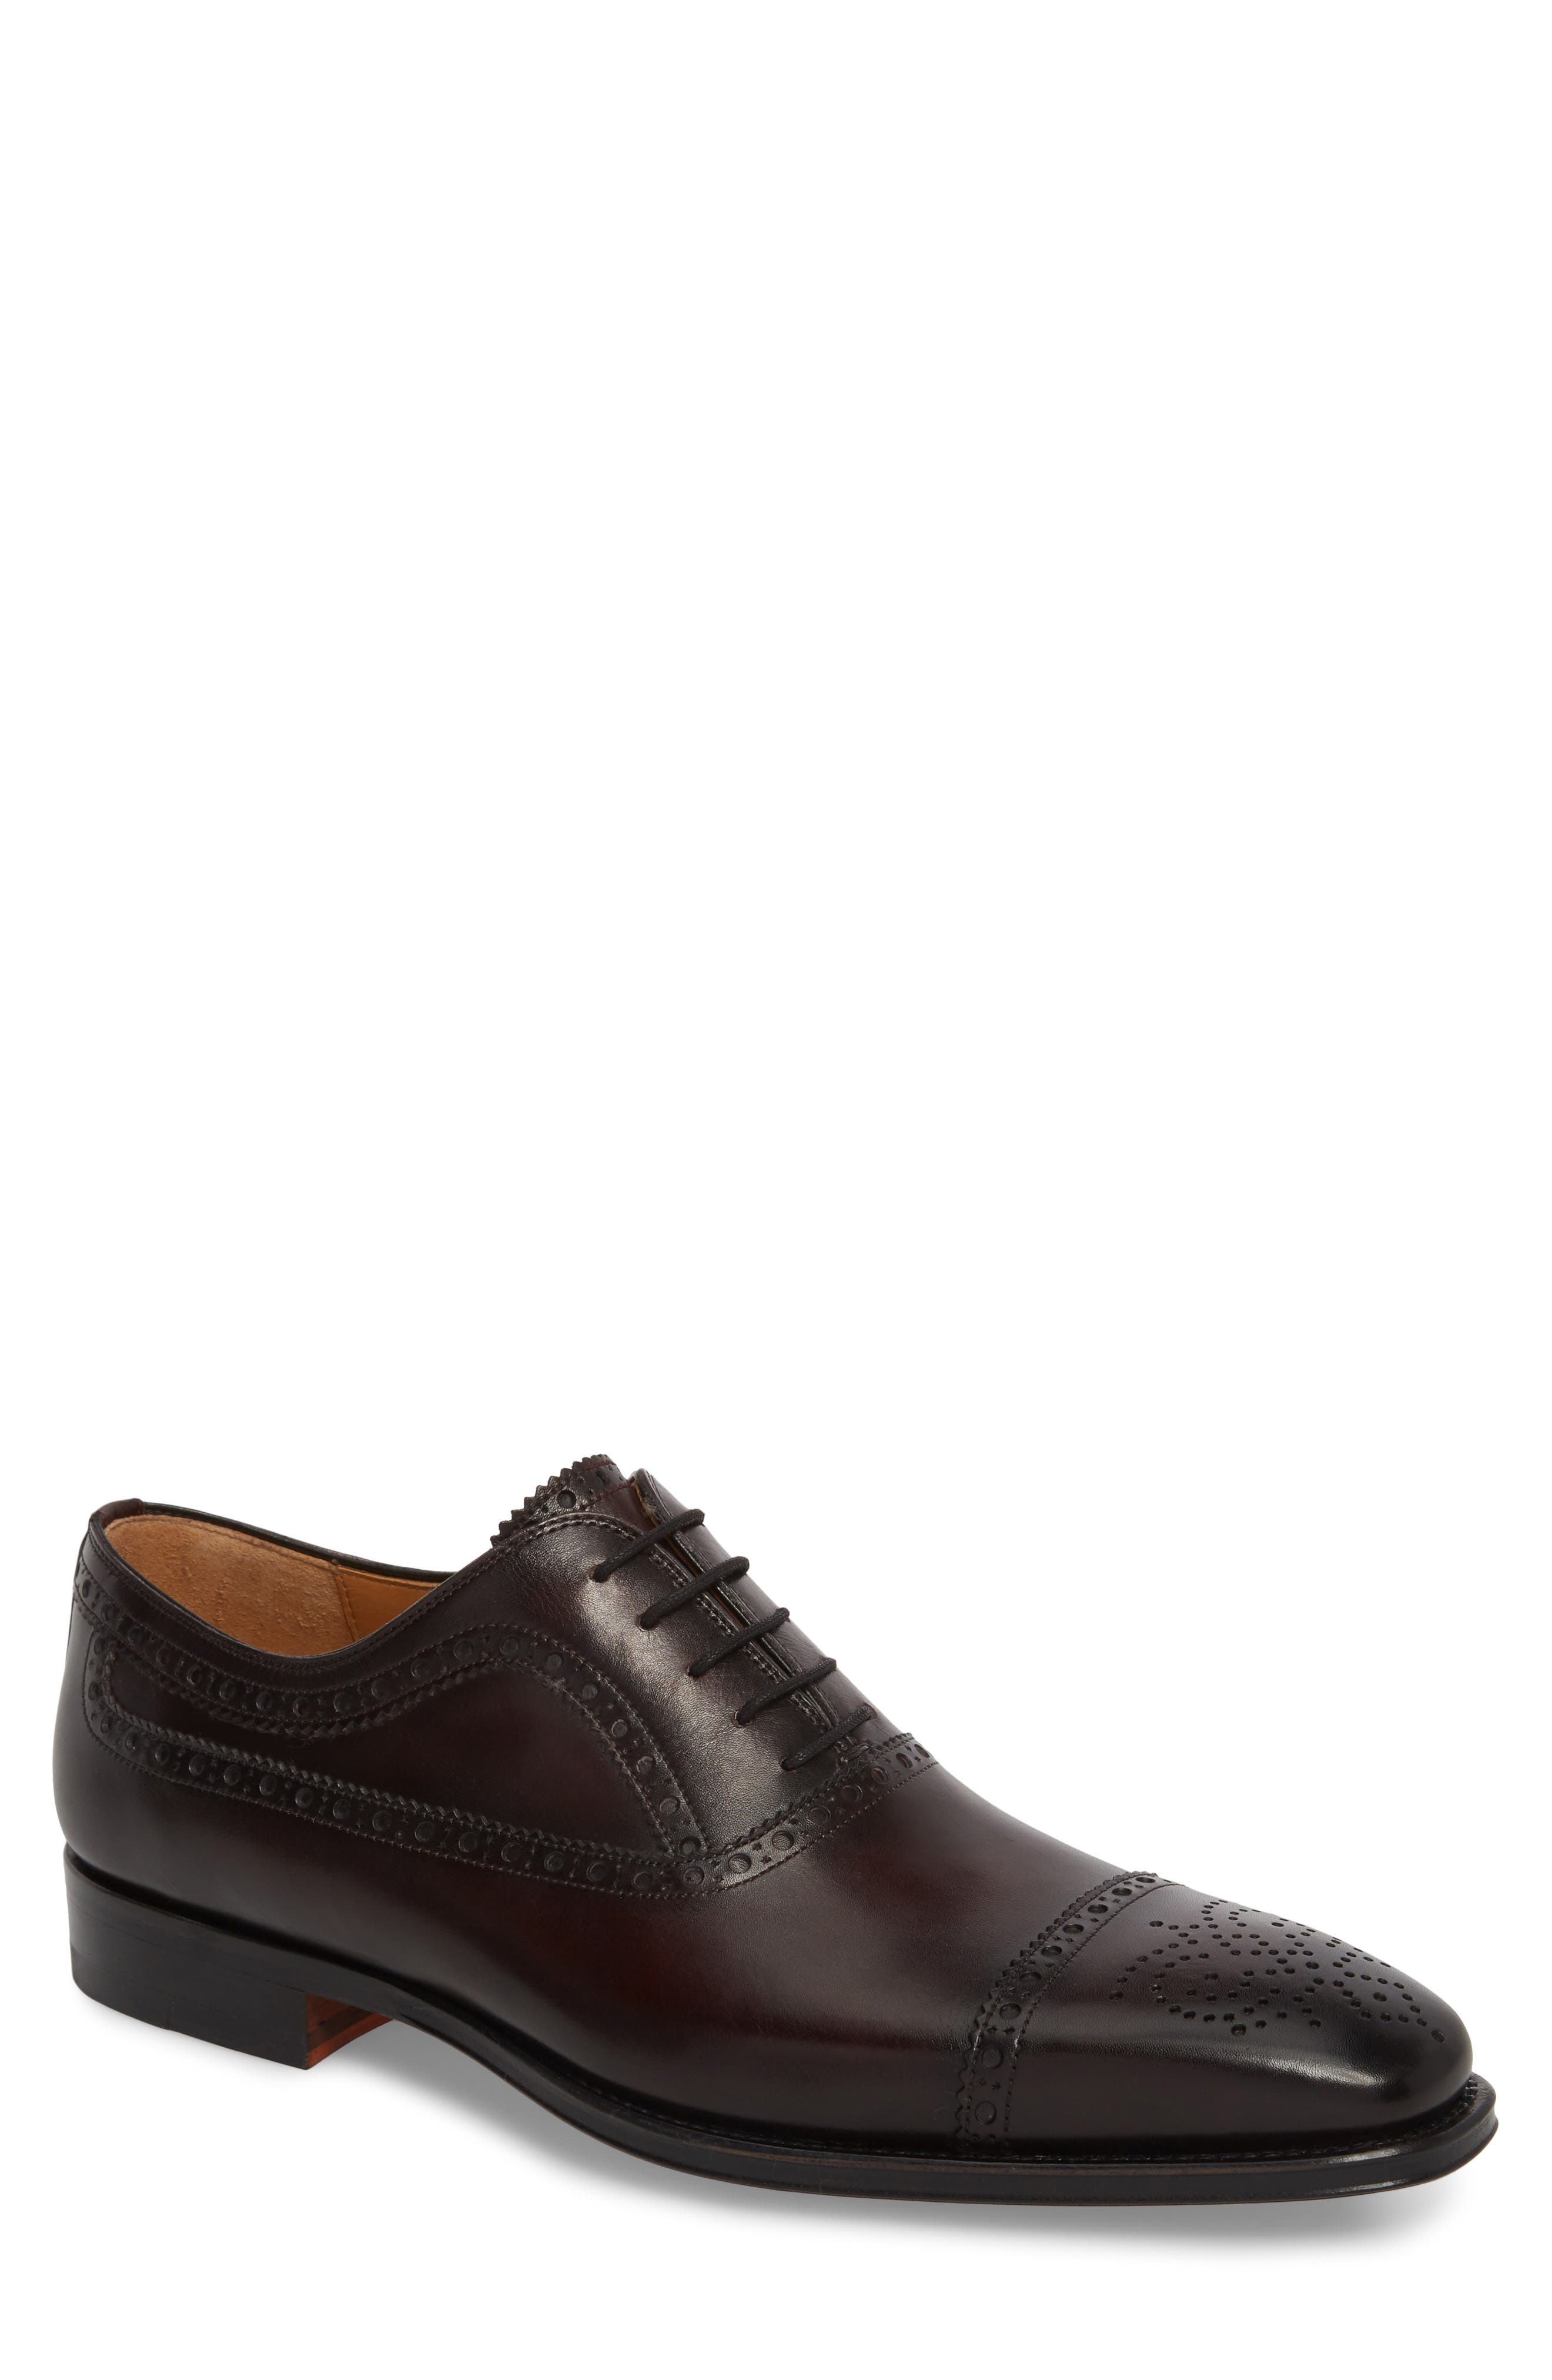 Magnanni Martino Cap Toe Oxford (Men)